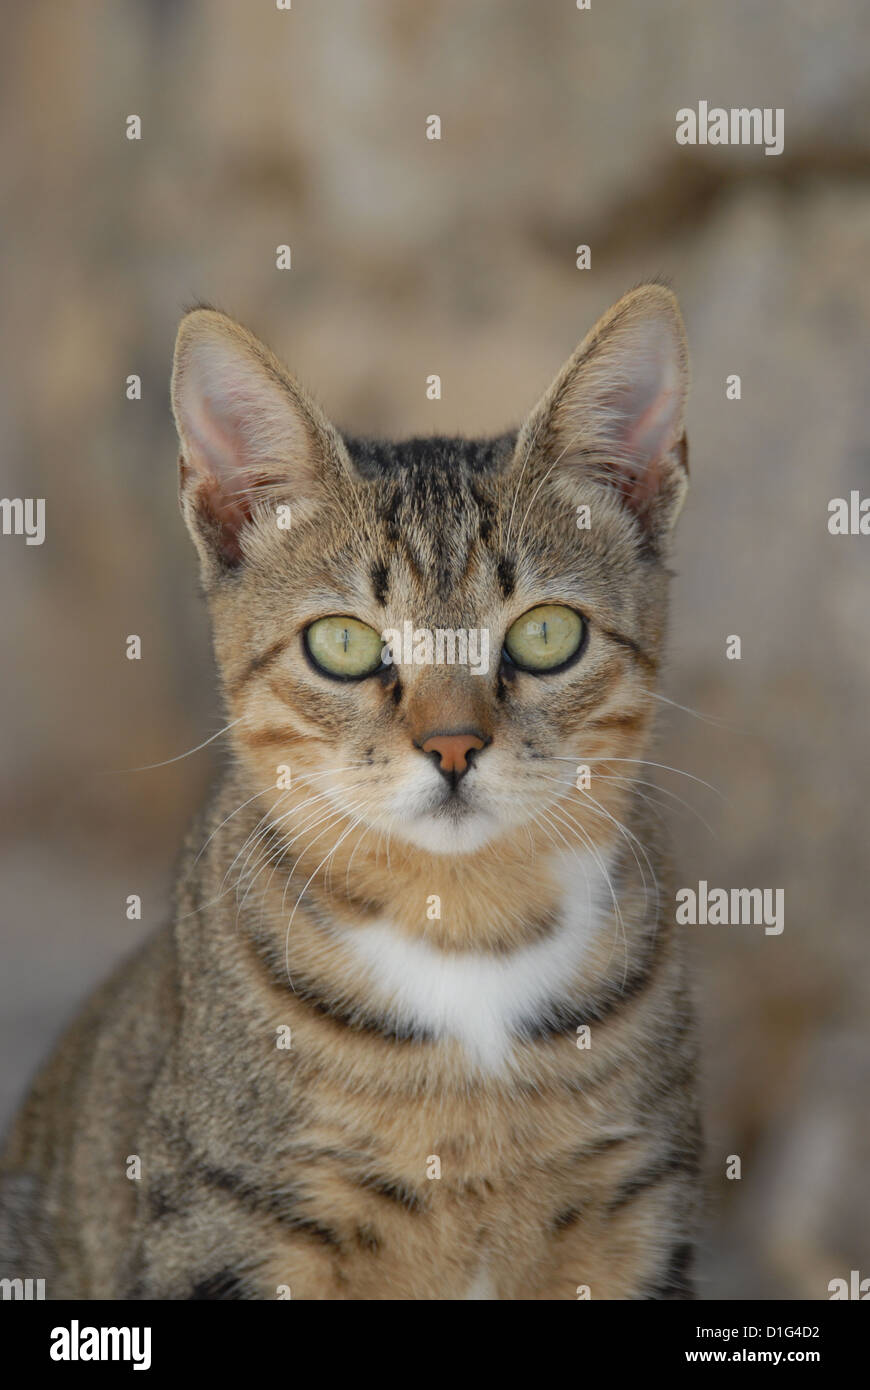 Tabby and White, portrait, Greece, Dodecanese Island, Non-pedigree Shorthair, felis silvestris forma catus, domesticus - Stock Image